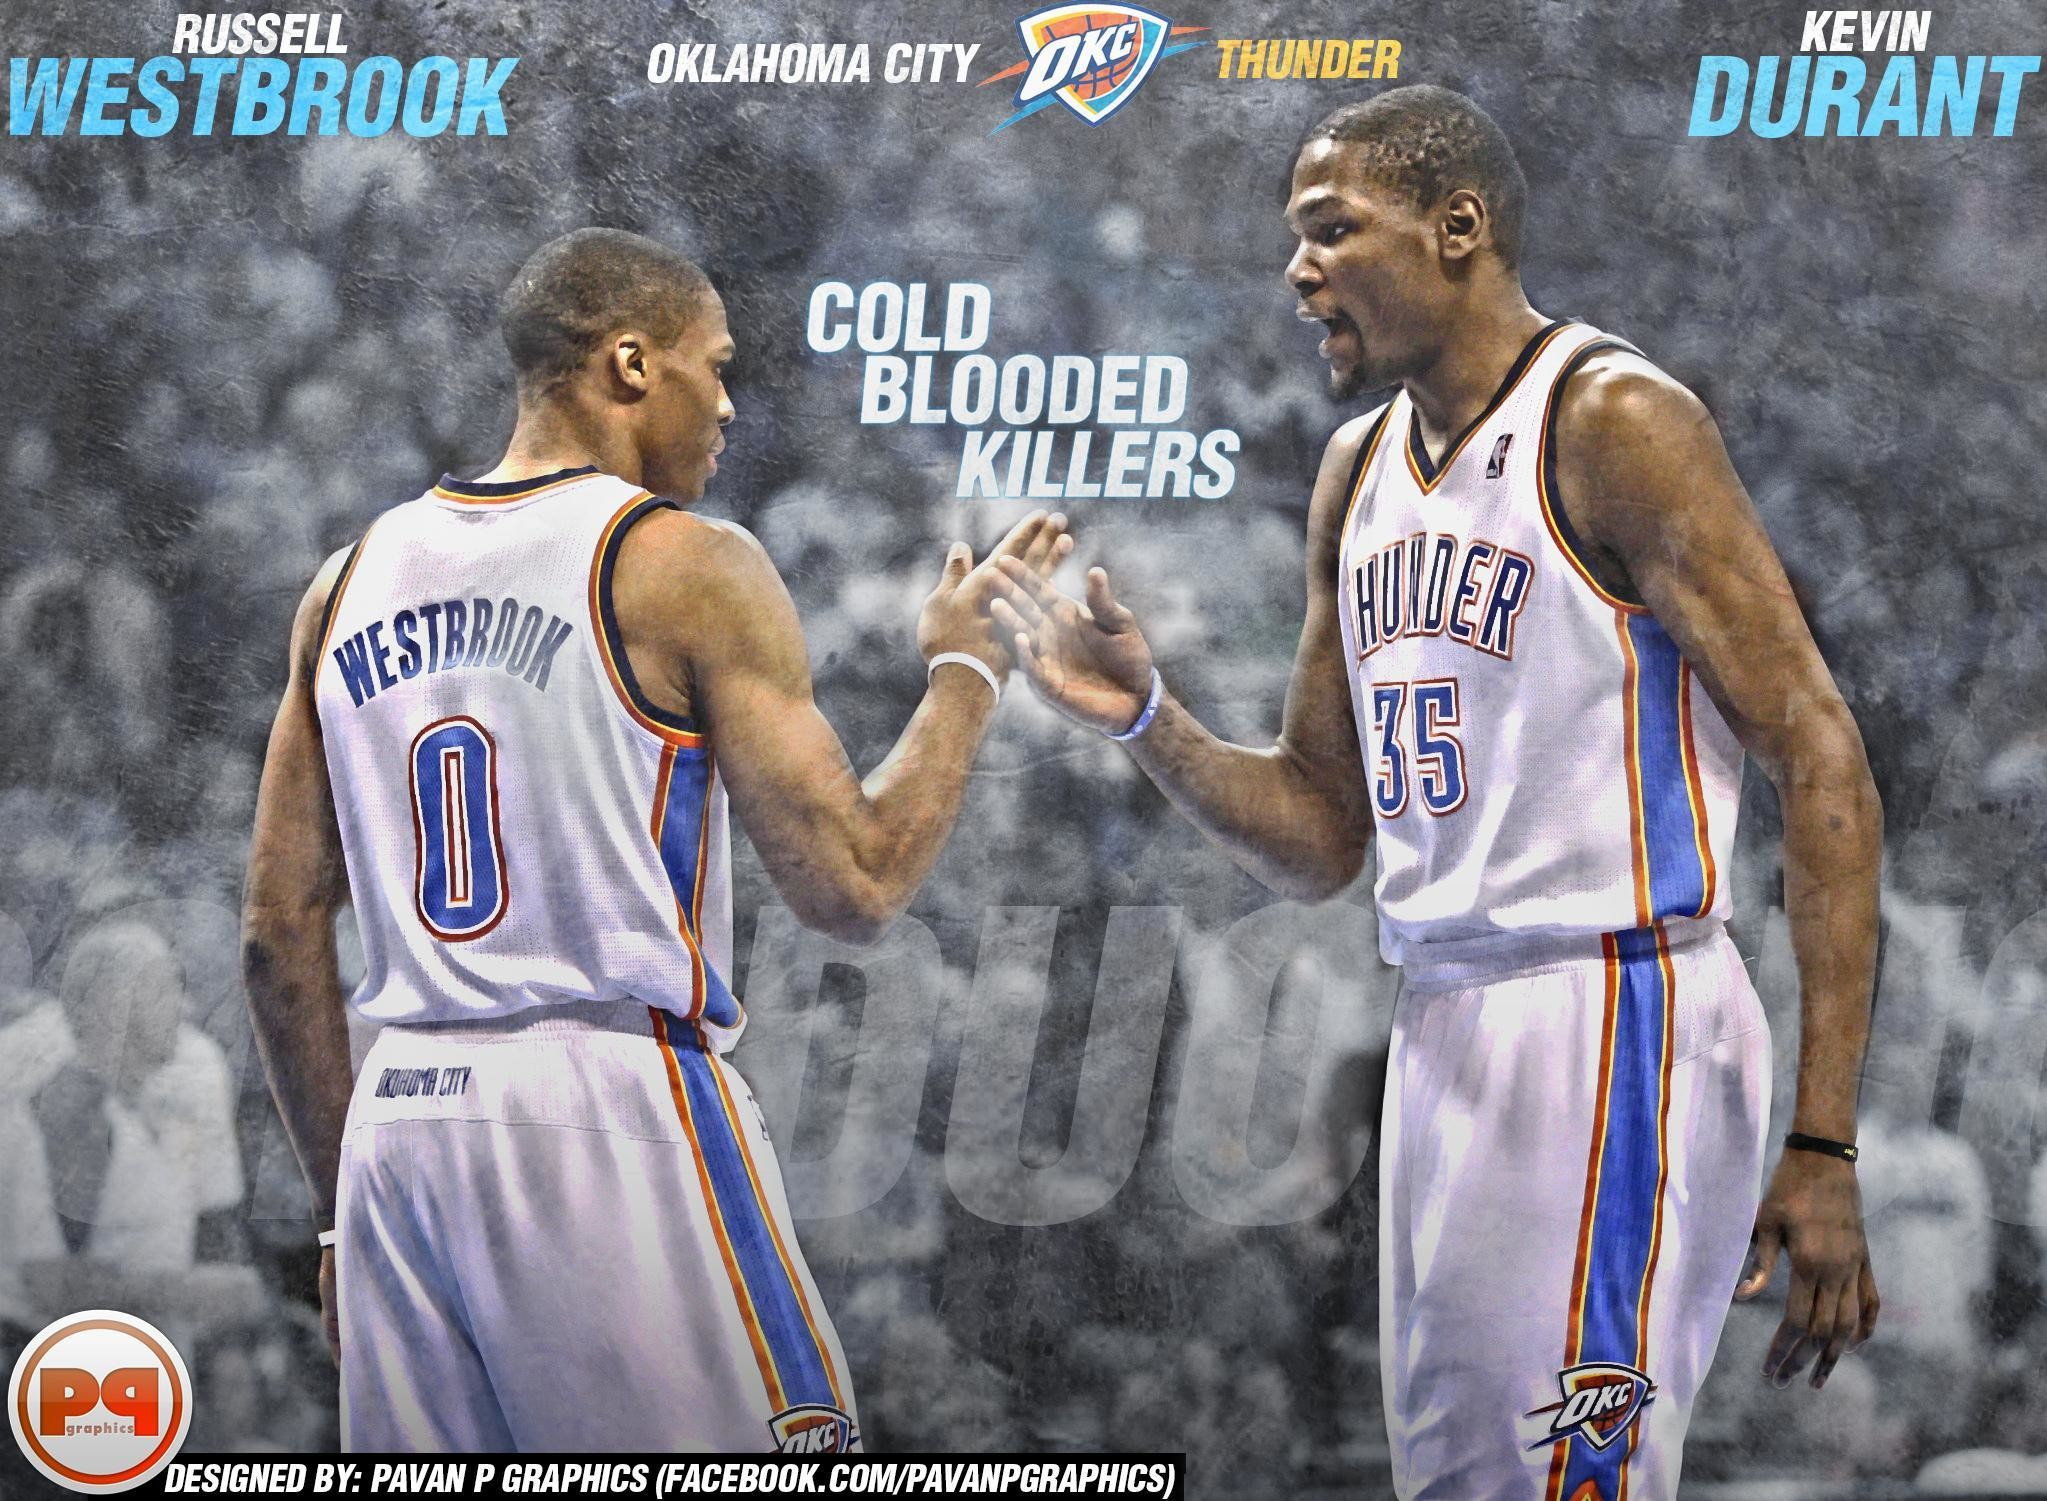 2047x1501 Kevin Durant And Russell Westbrook Wallpapers 2017 - Wallpaper Cave